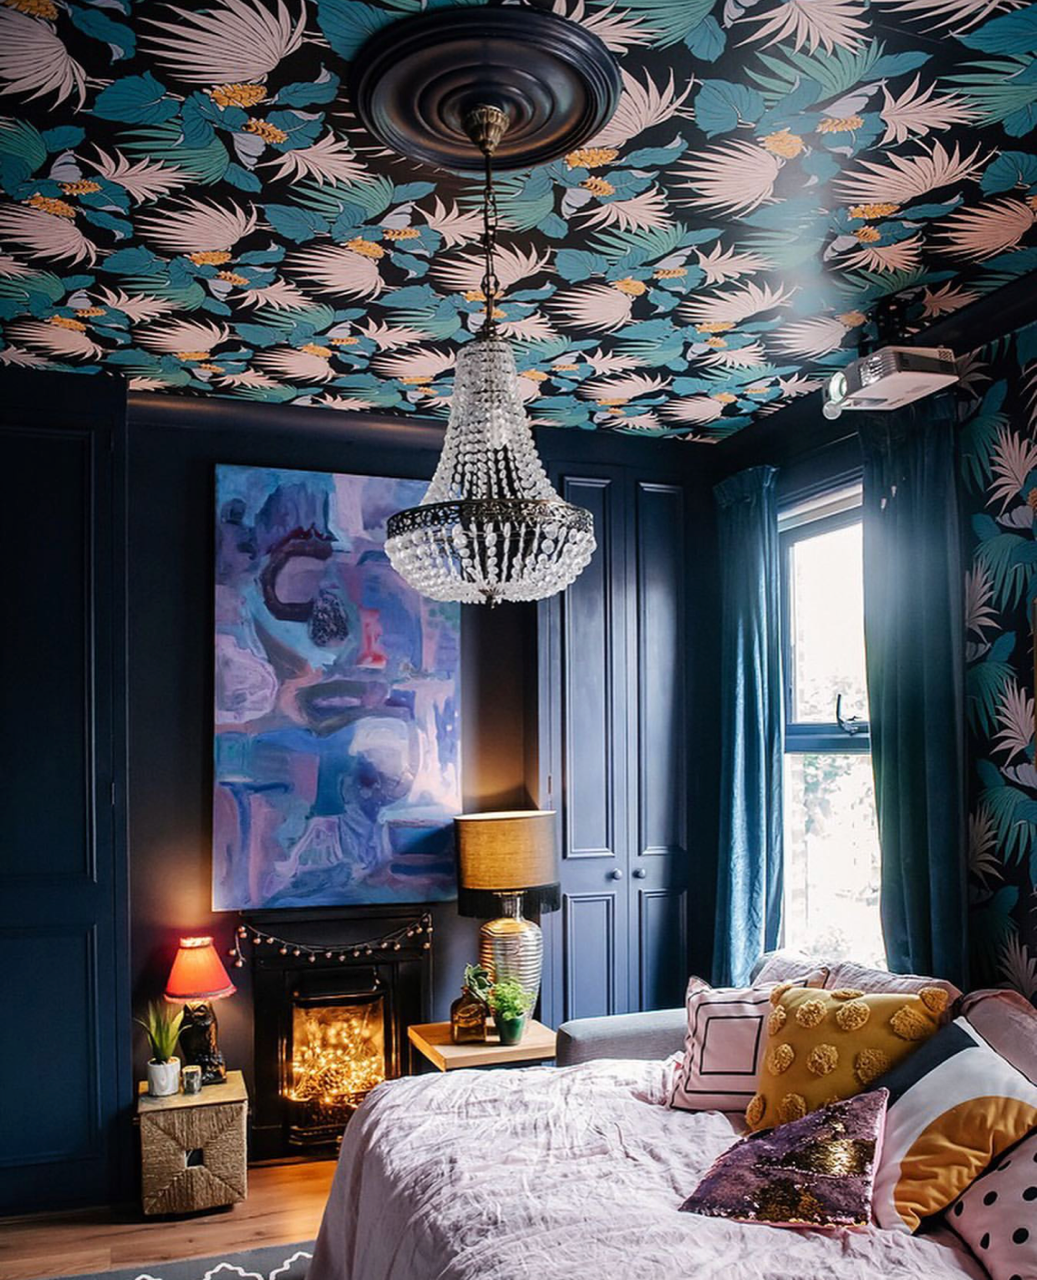 How WOW does that wallpaper look against the dark backdrop? Image:  @layered.home